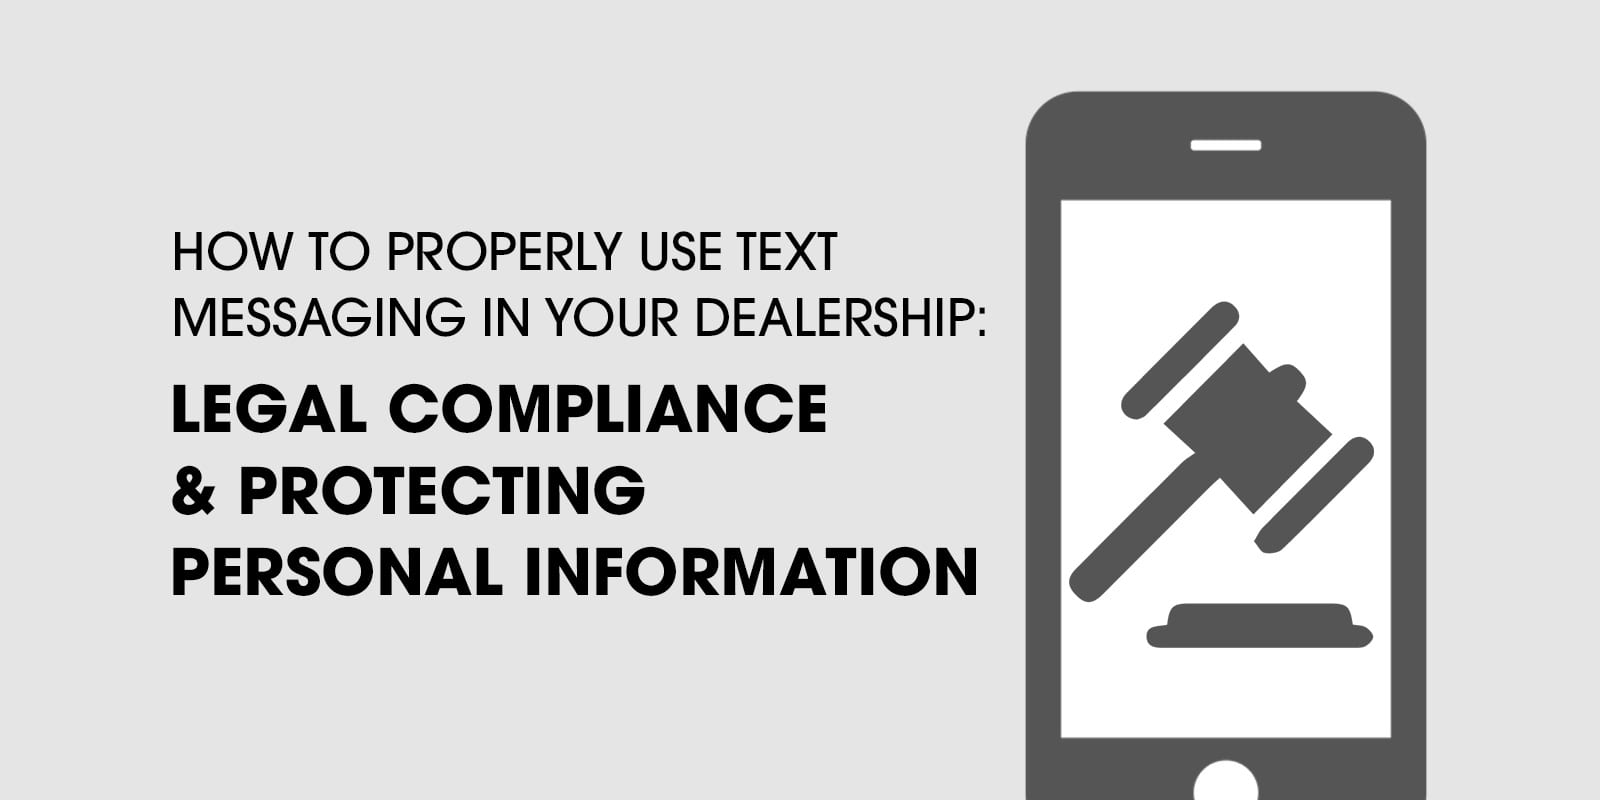 How To Properly Use Text Messaging In Your Dealership: Legal Compliance & Protecting Personal Information